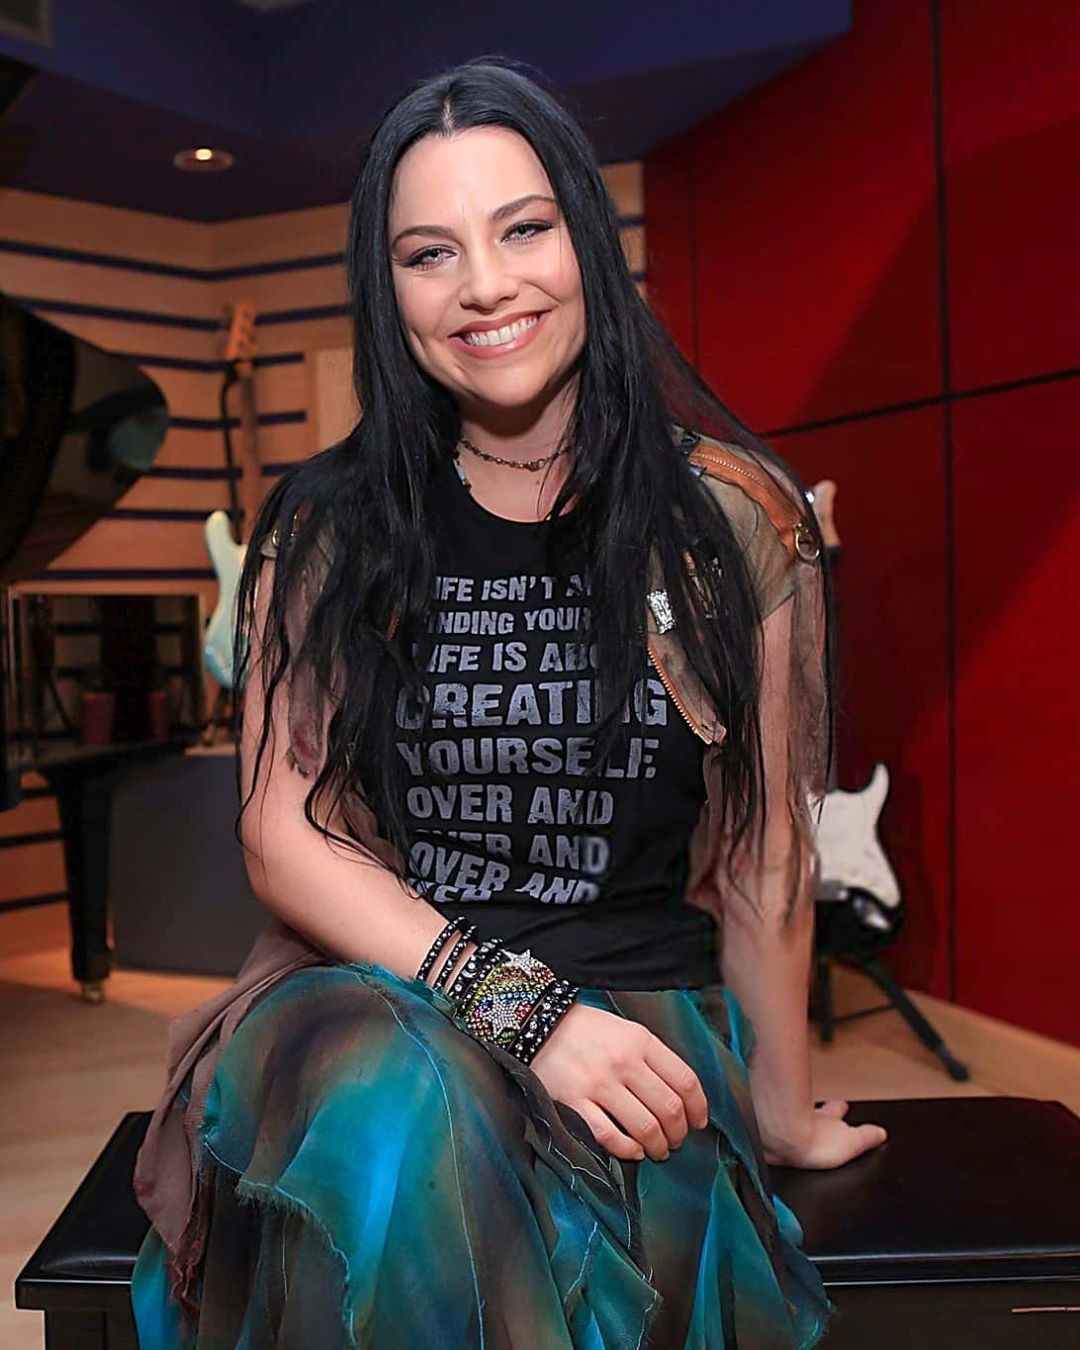 Evfan On Instagram Amylee Evanescence In 2020 Evanescence Amy Lee Women In Music